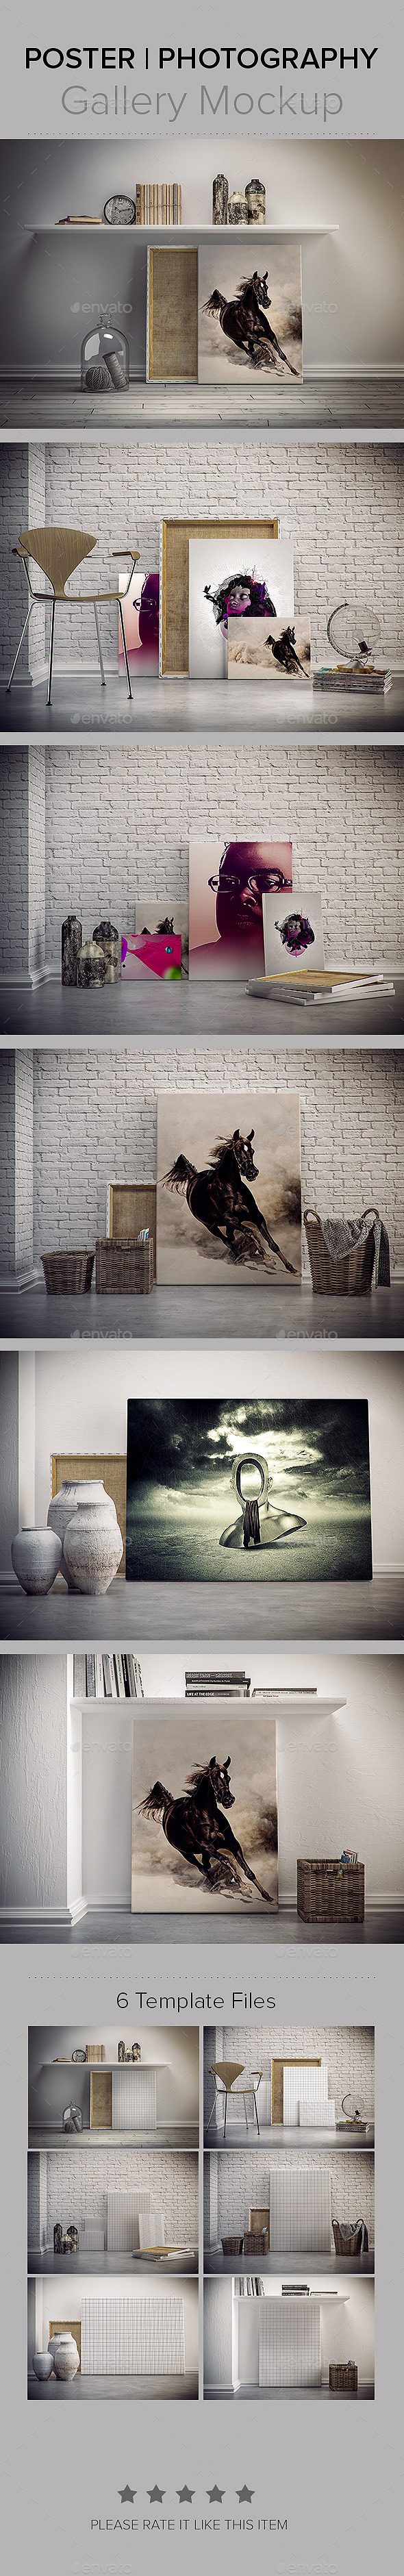 Photography Poster GalleryMockup